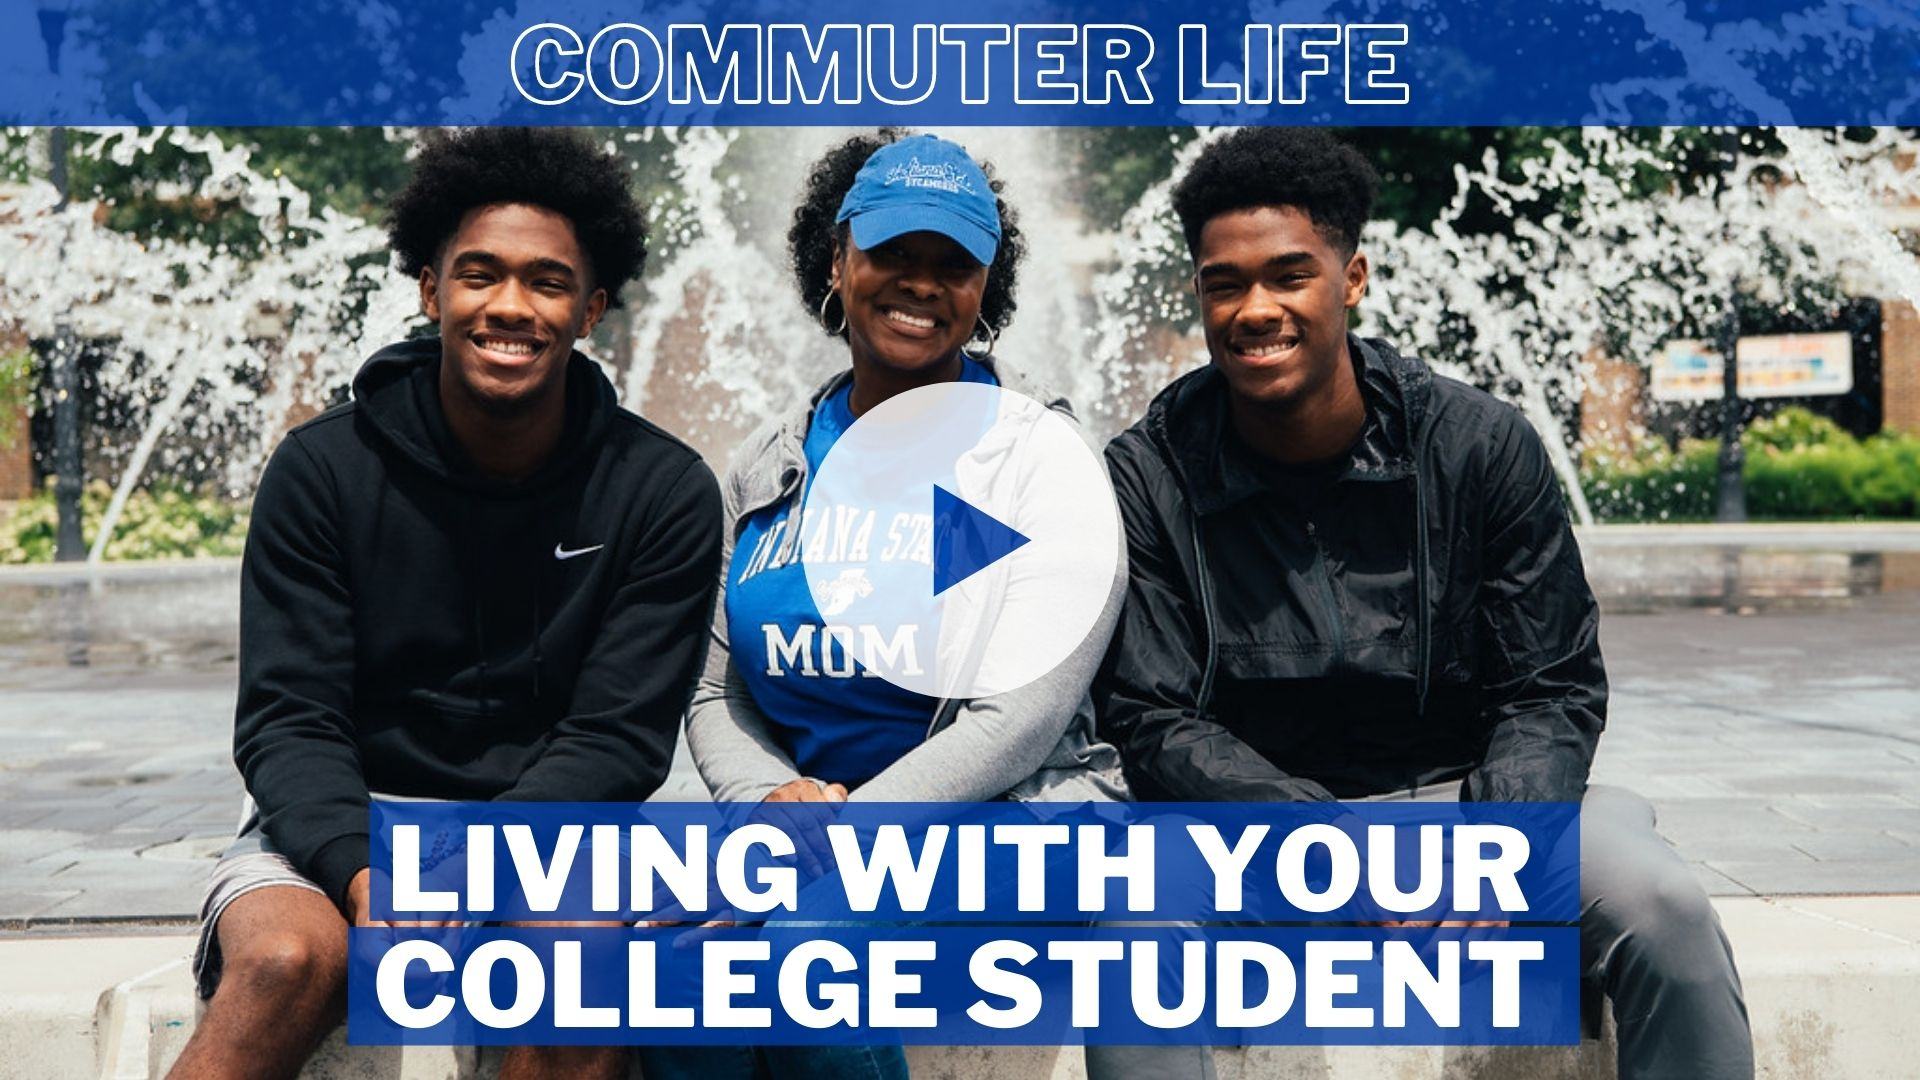 Living with Your College Student (Commuter Life)